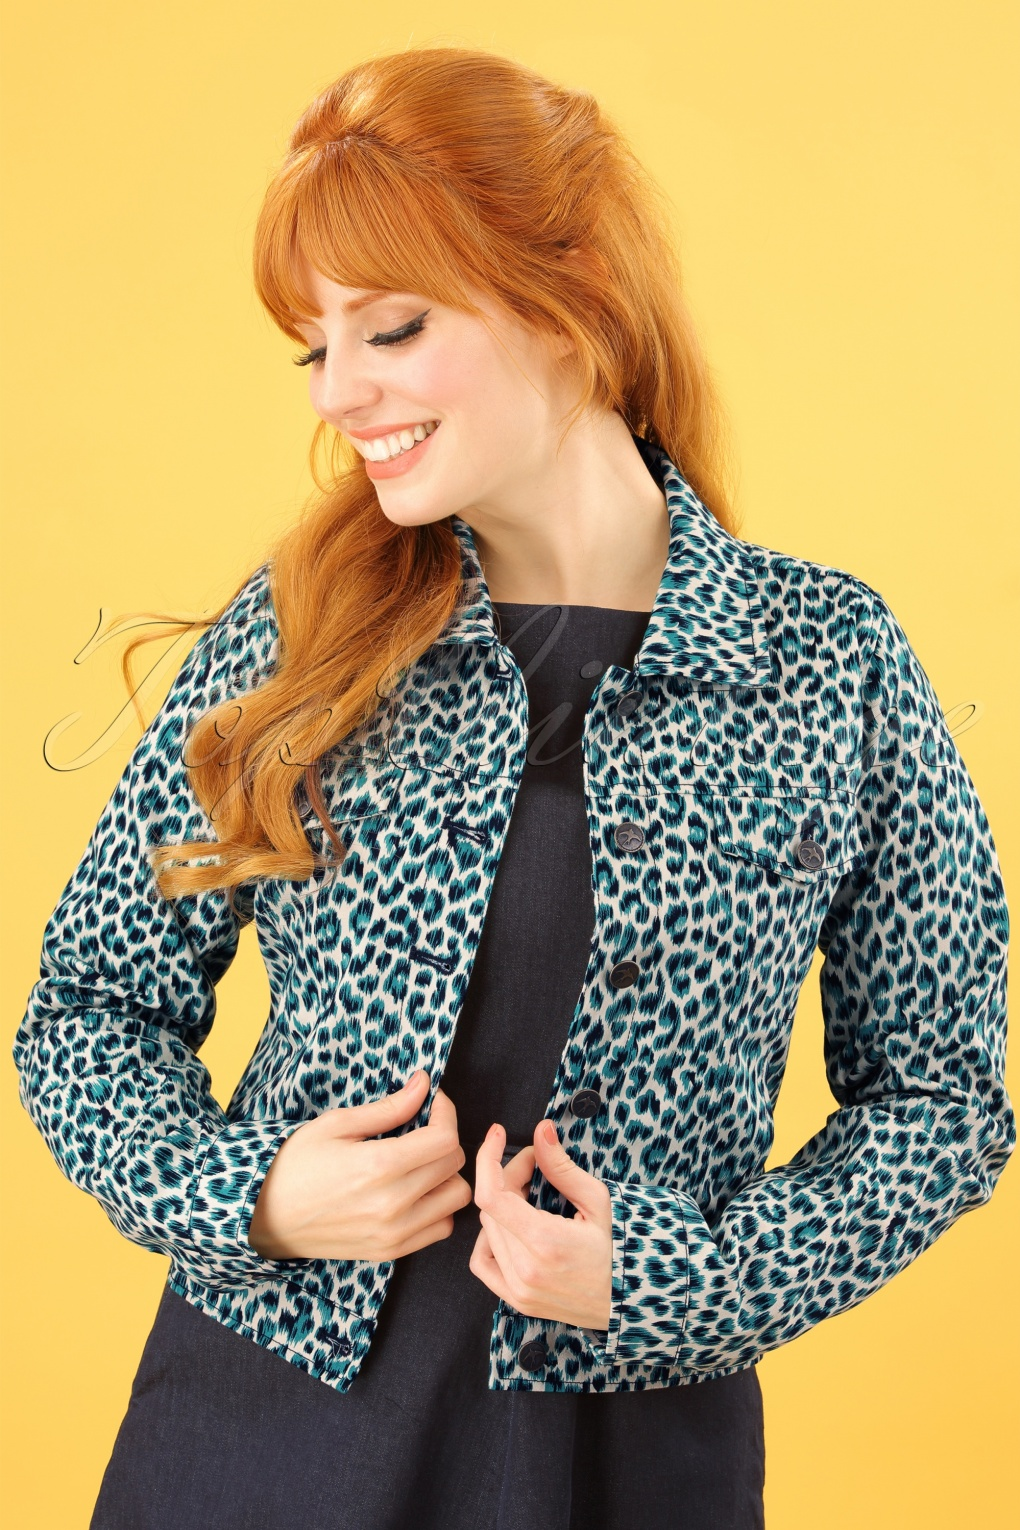 Vintage Coats & Jackets | Retro Coats and Jackets 60s Janey Catnip Jacket in Putty Ecru £61.13 AT vintagedancer.com